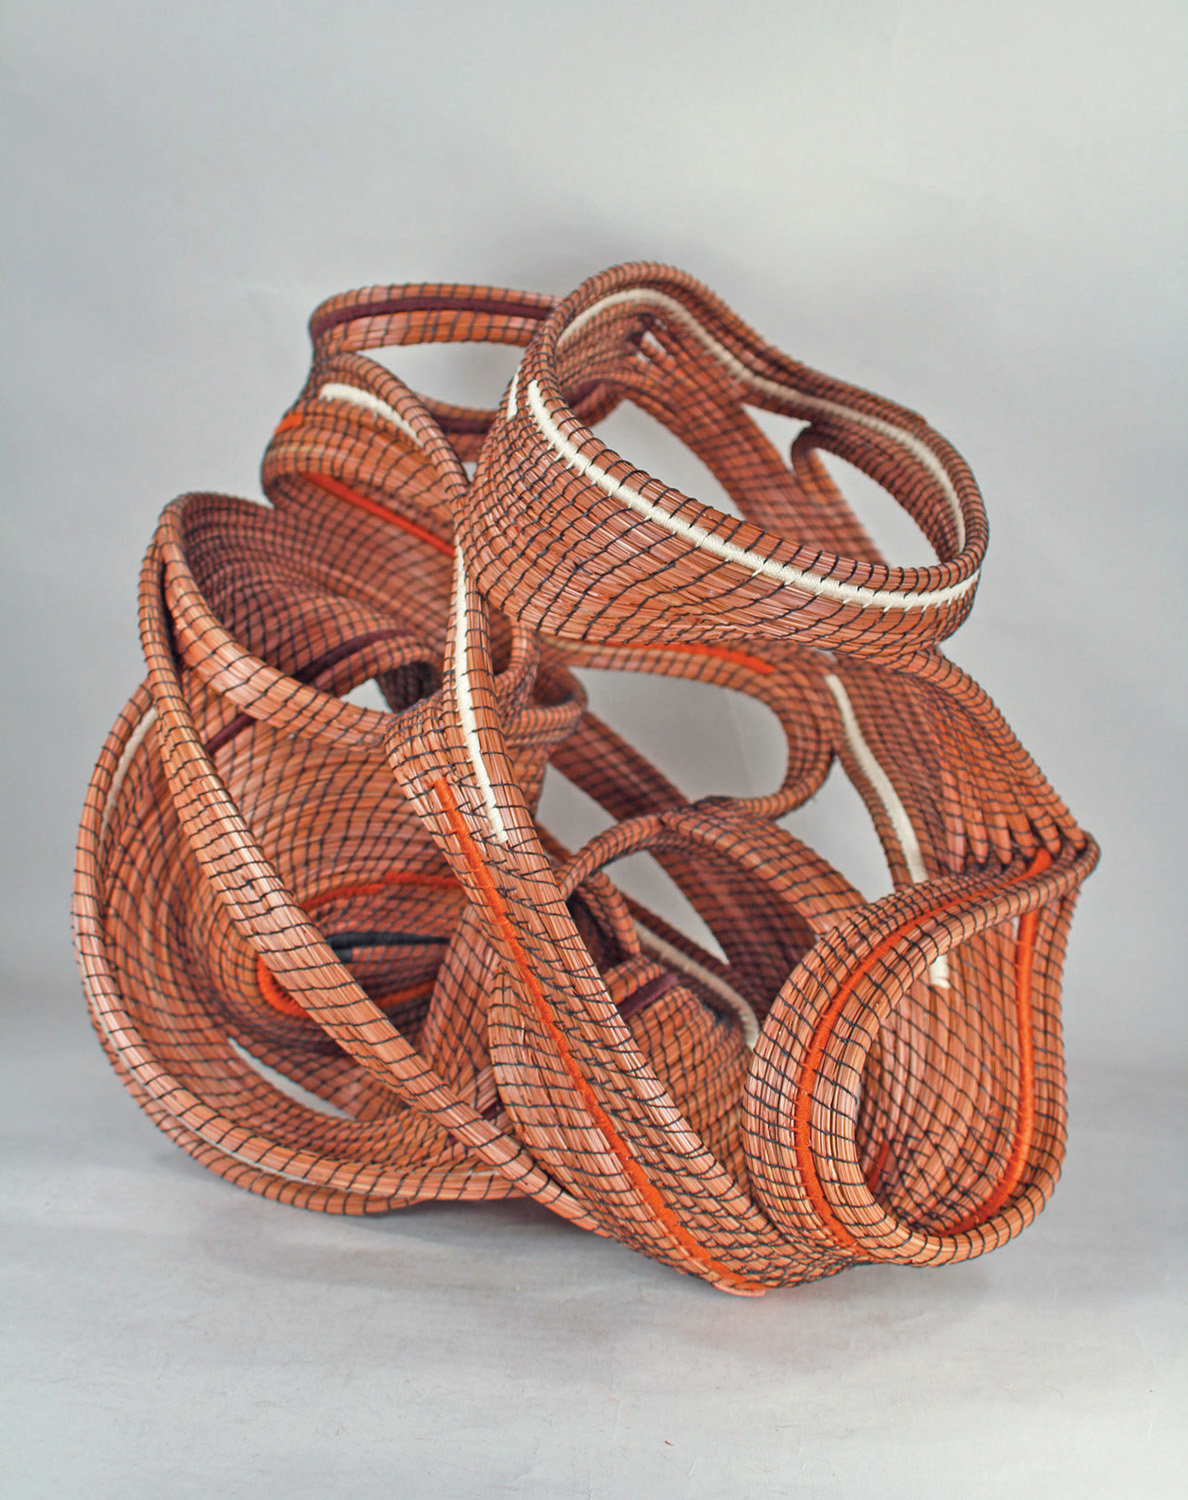 """Enigma Peggy Wyman, Macomb, MO 15 x 15 x 13.5"""" Long-leaf pine needles, Irish waxed linen, pearl cotton and wire,  using the techniques of coiled basketry"""